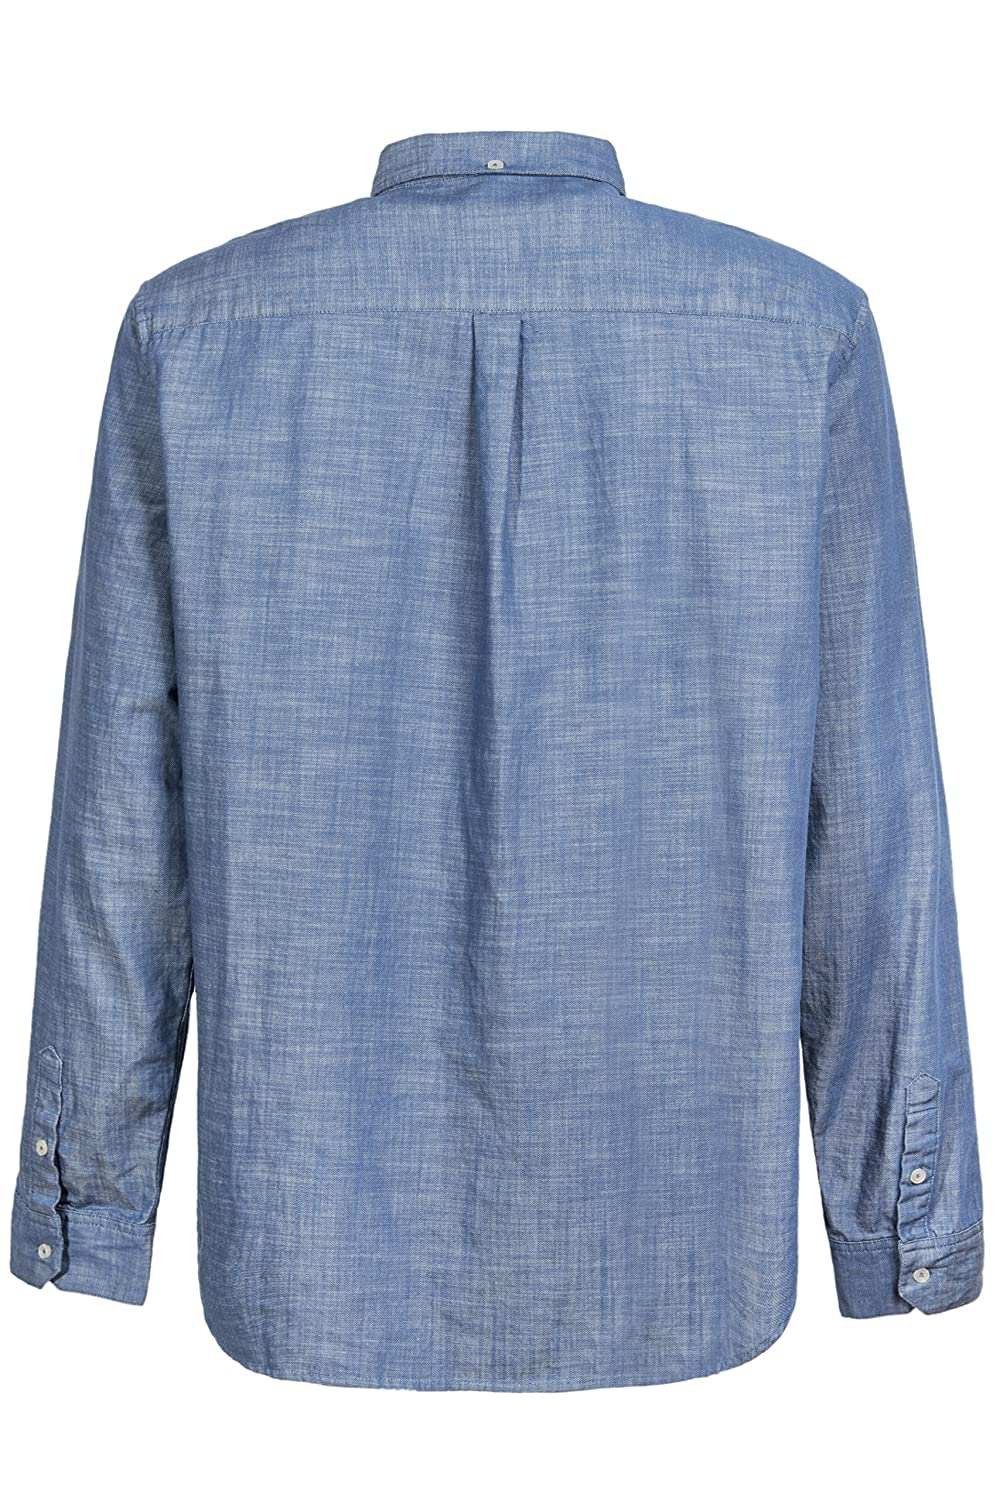 DISTILLED Mens Casual Long Sleeve Button Down Western Vintage Shirt